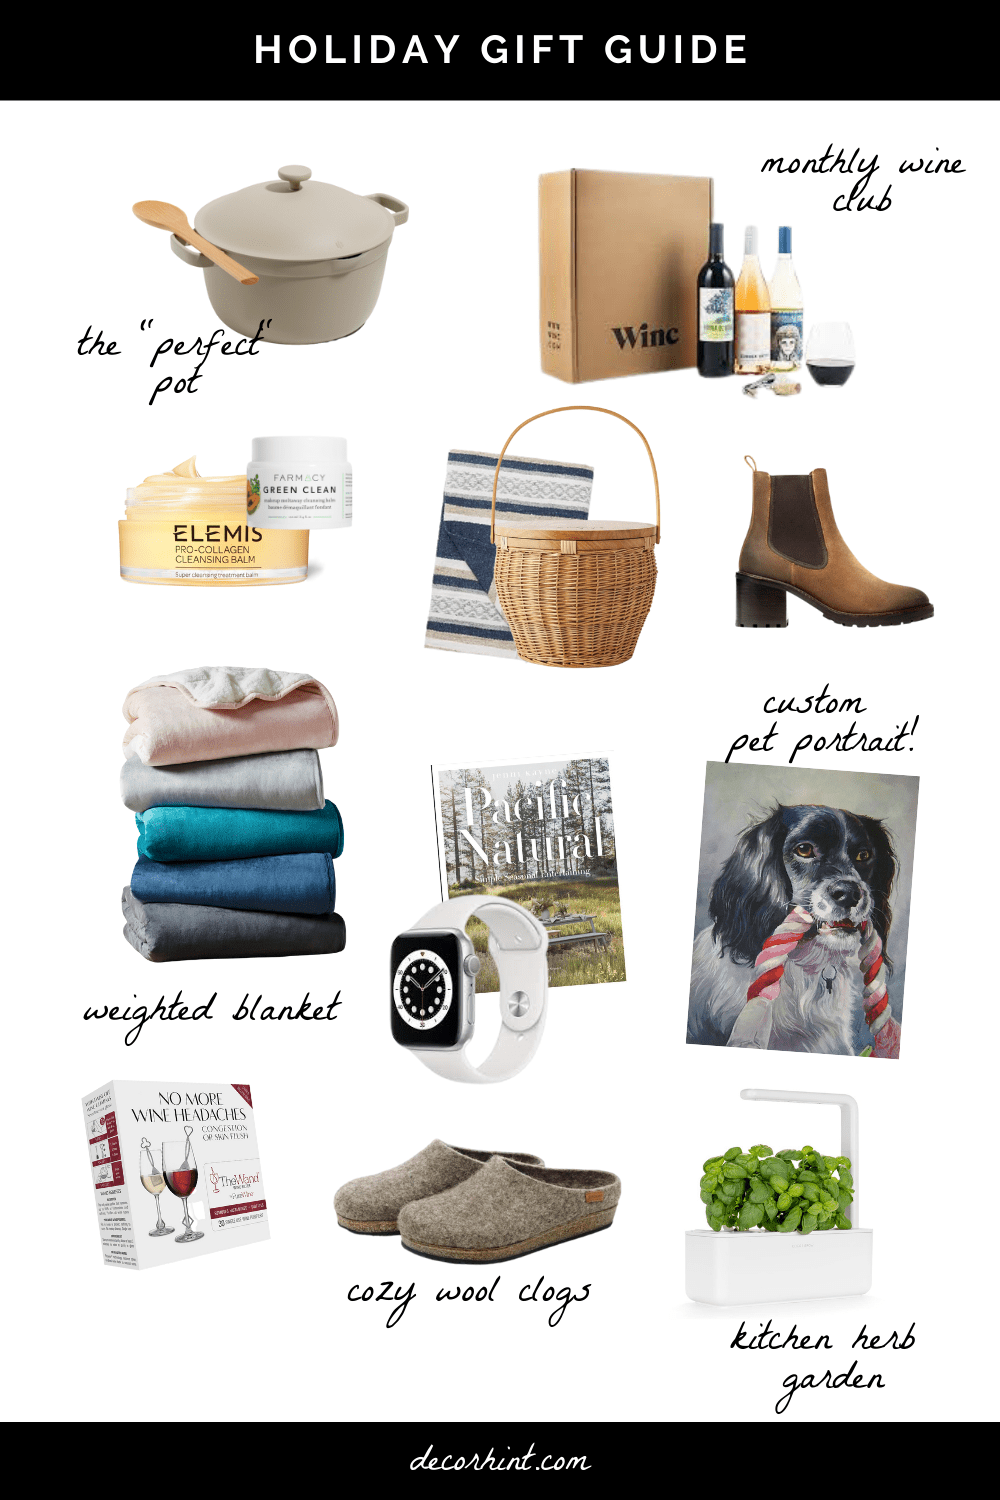 My Christmas Wishlist - unique holiday gift ideas for your friends and family.